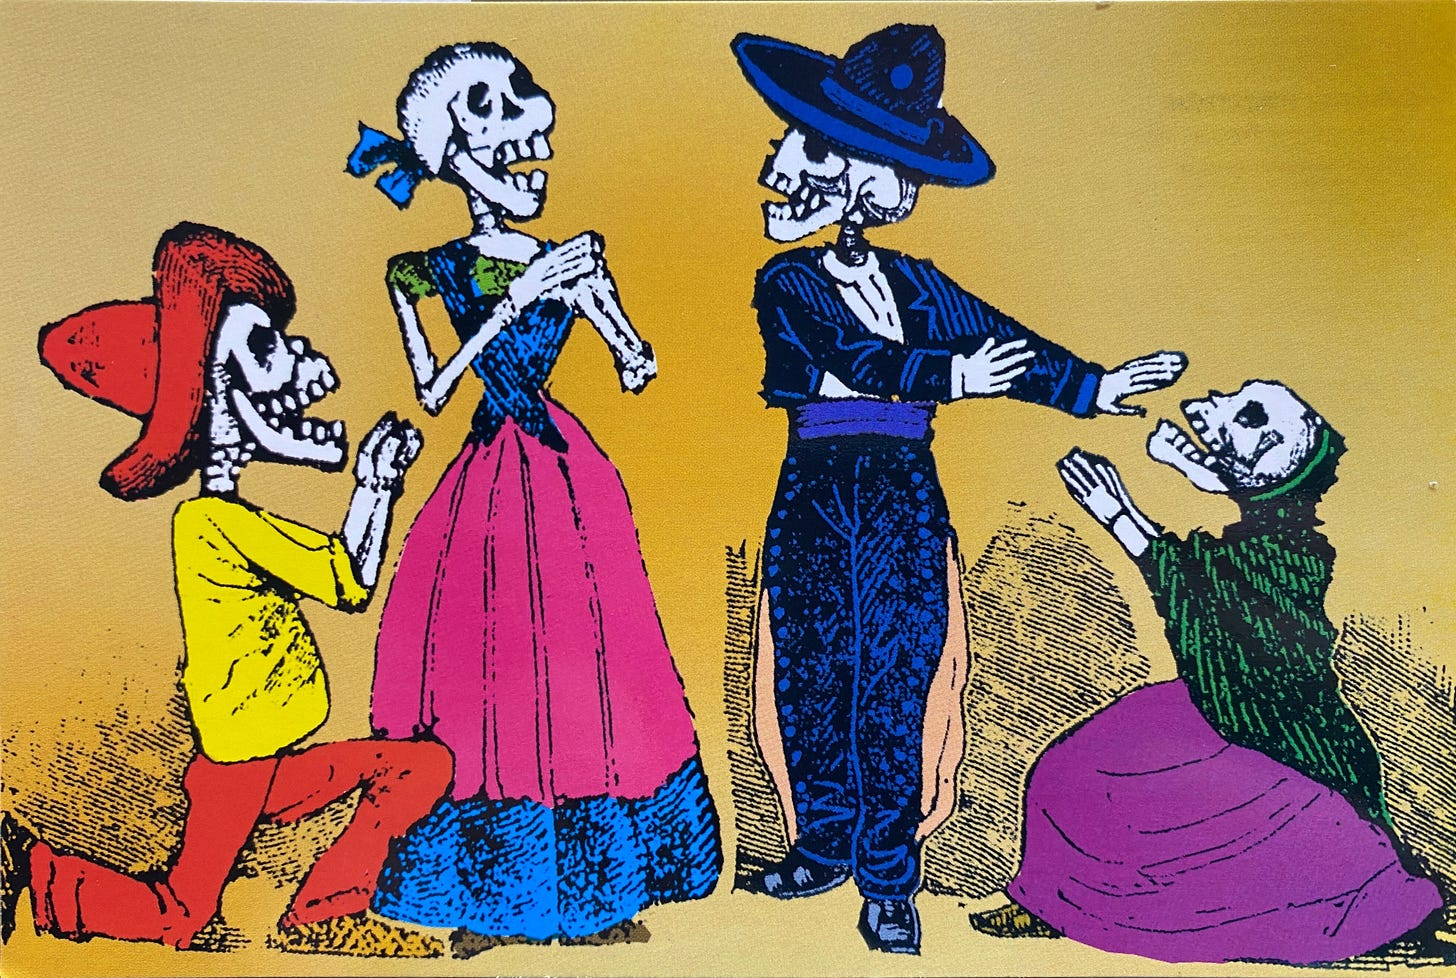 From left to right: A skeleton with pants and a sombrero, kneeling on one knee, with their hands together in a begging fashion. It is facing to the right, next to a standing skeleton wearing a lush mexican dress. It has their hands together, covering where the heart was once before. A skeleton dressed like a mariachi is facing the previous one, with their hands facing the right, pacifying the las skeleton. This one wears a skirt and a rebozo, looking supplicant to the previous skeleton.